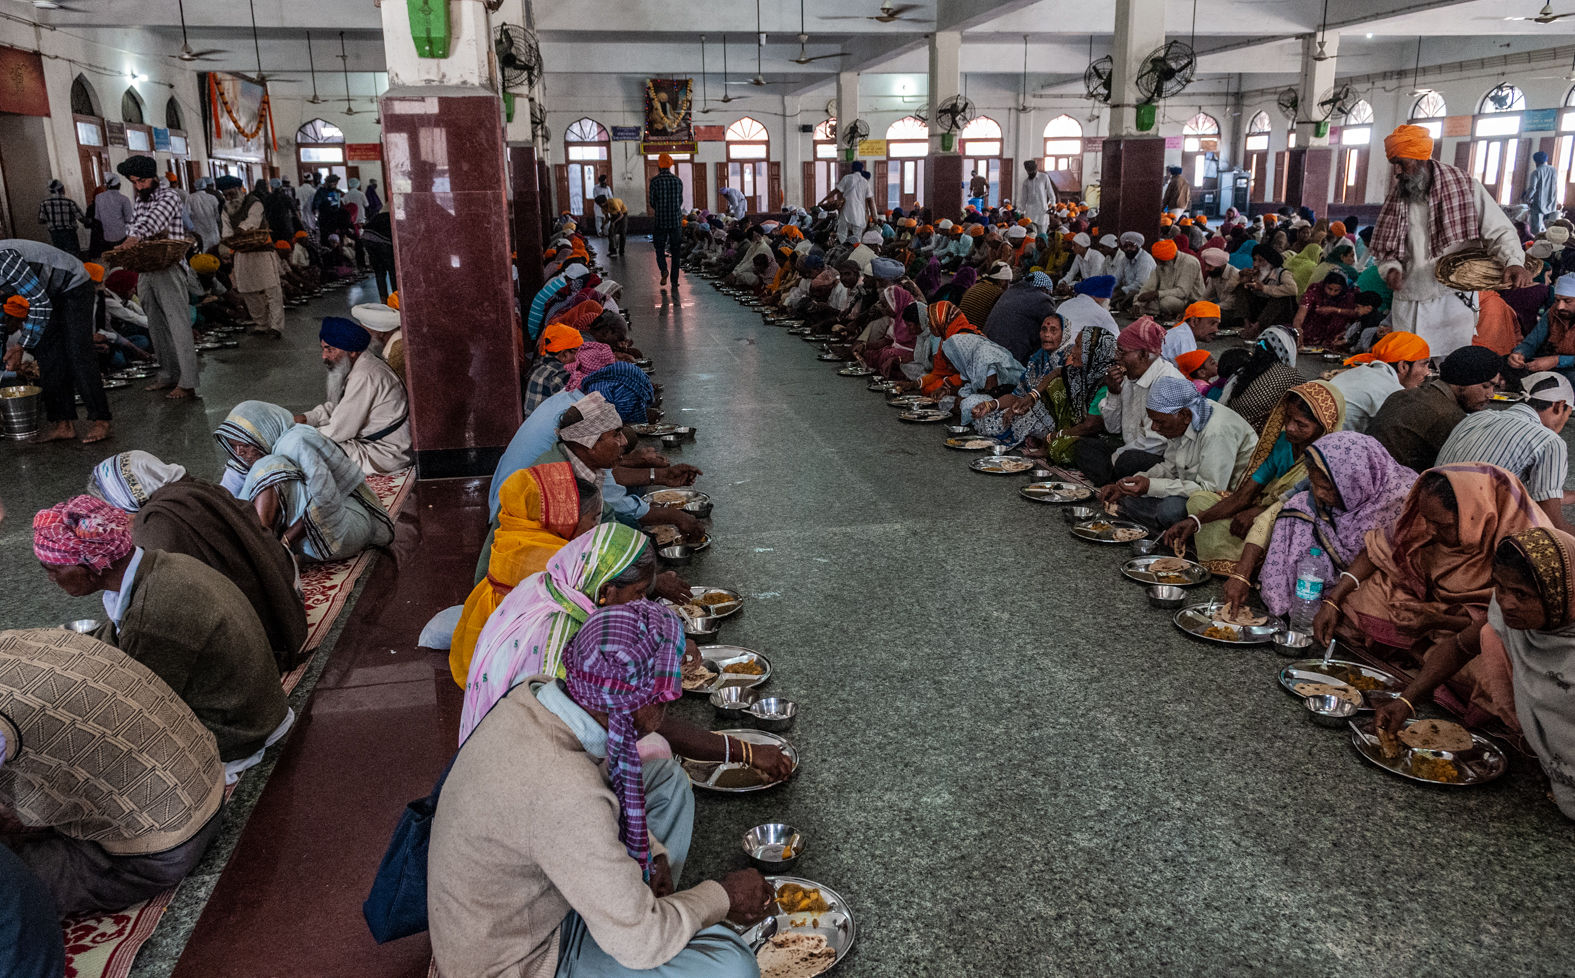 Dining hall at the Golden Temple, Amritsar, March 2013